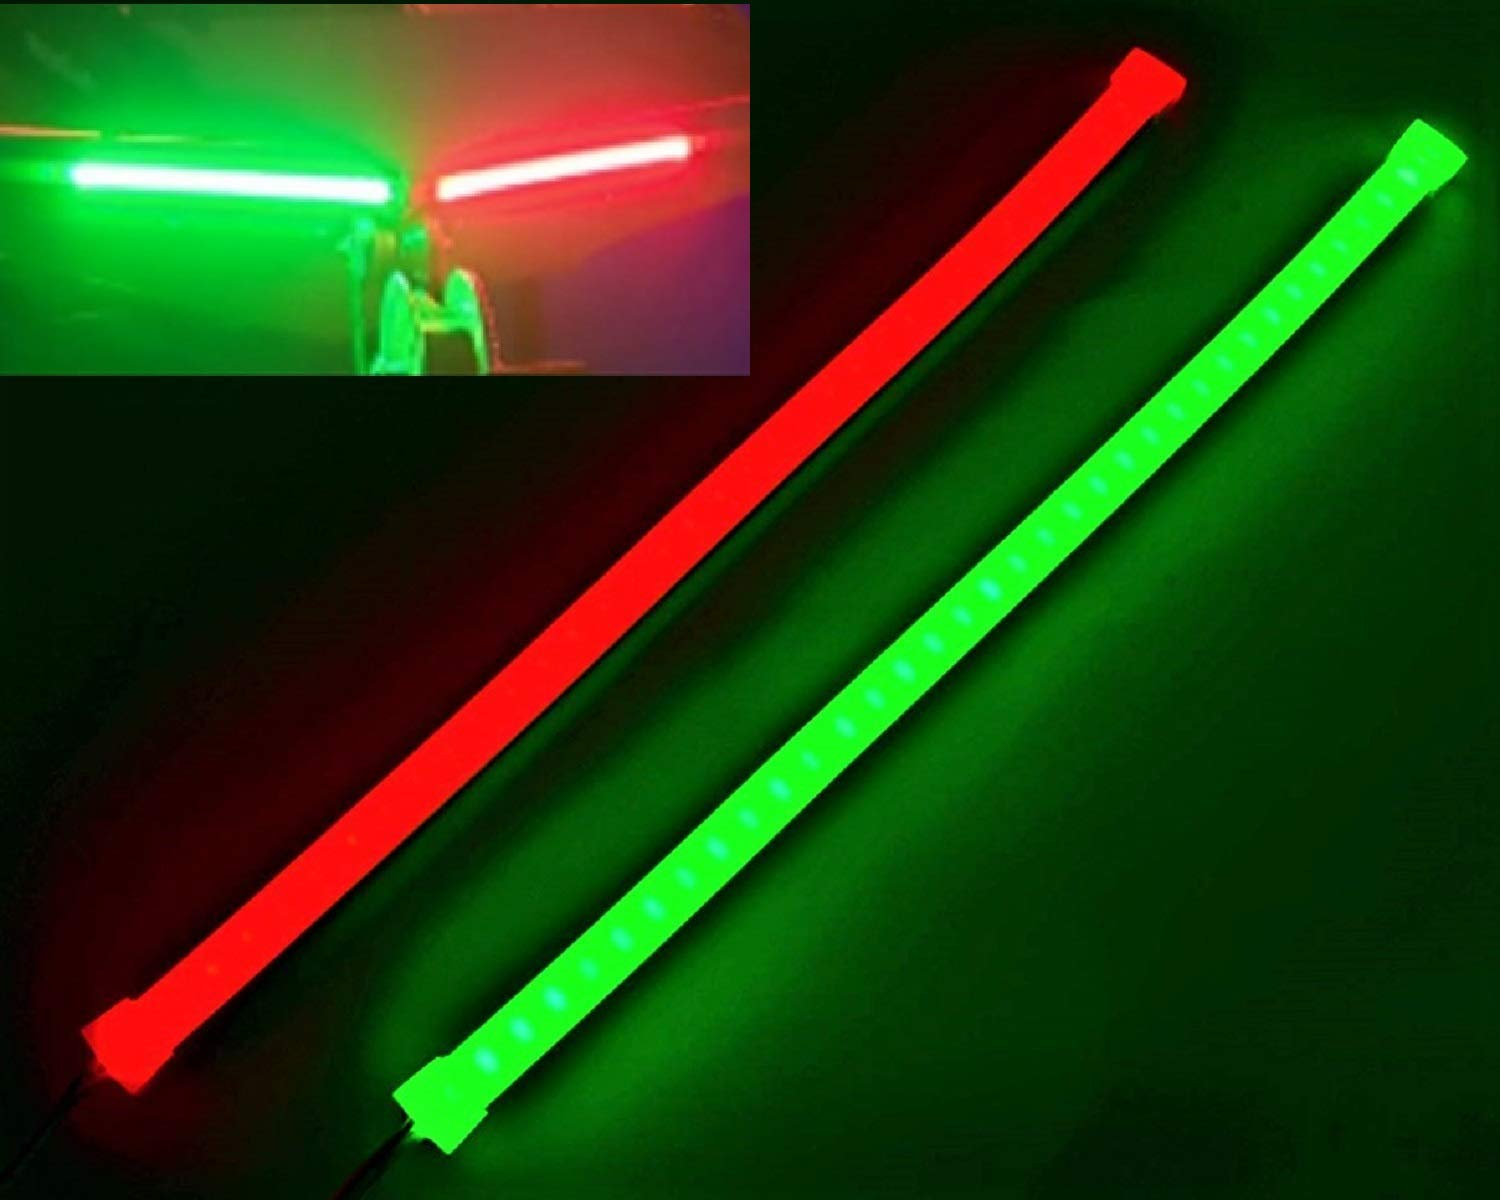 Pimp My Boat Neon Navs, Premium Red & Green Neon Navigation Boat LED Light Strip Kit IP68 Waterproof for Bass Boats, Pontoons, Wave Runners, Kayaks, Ski Boats for Fresh and Saltwater by Green Blob Outdoors